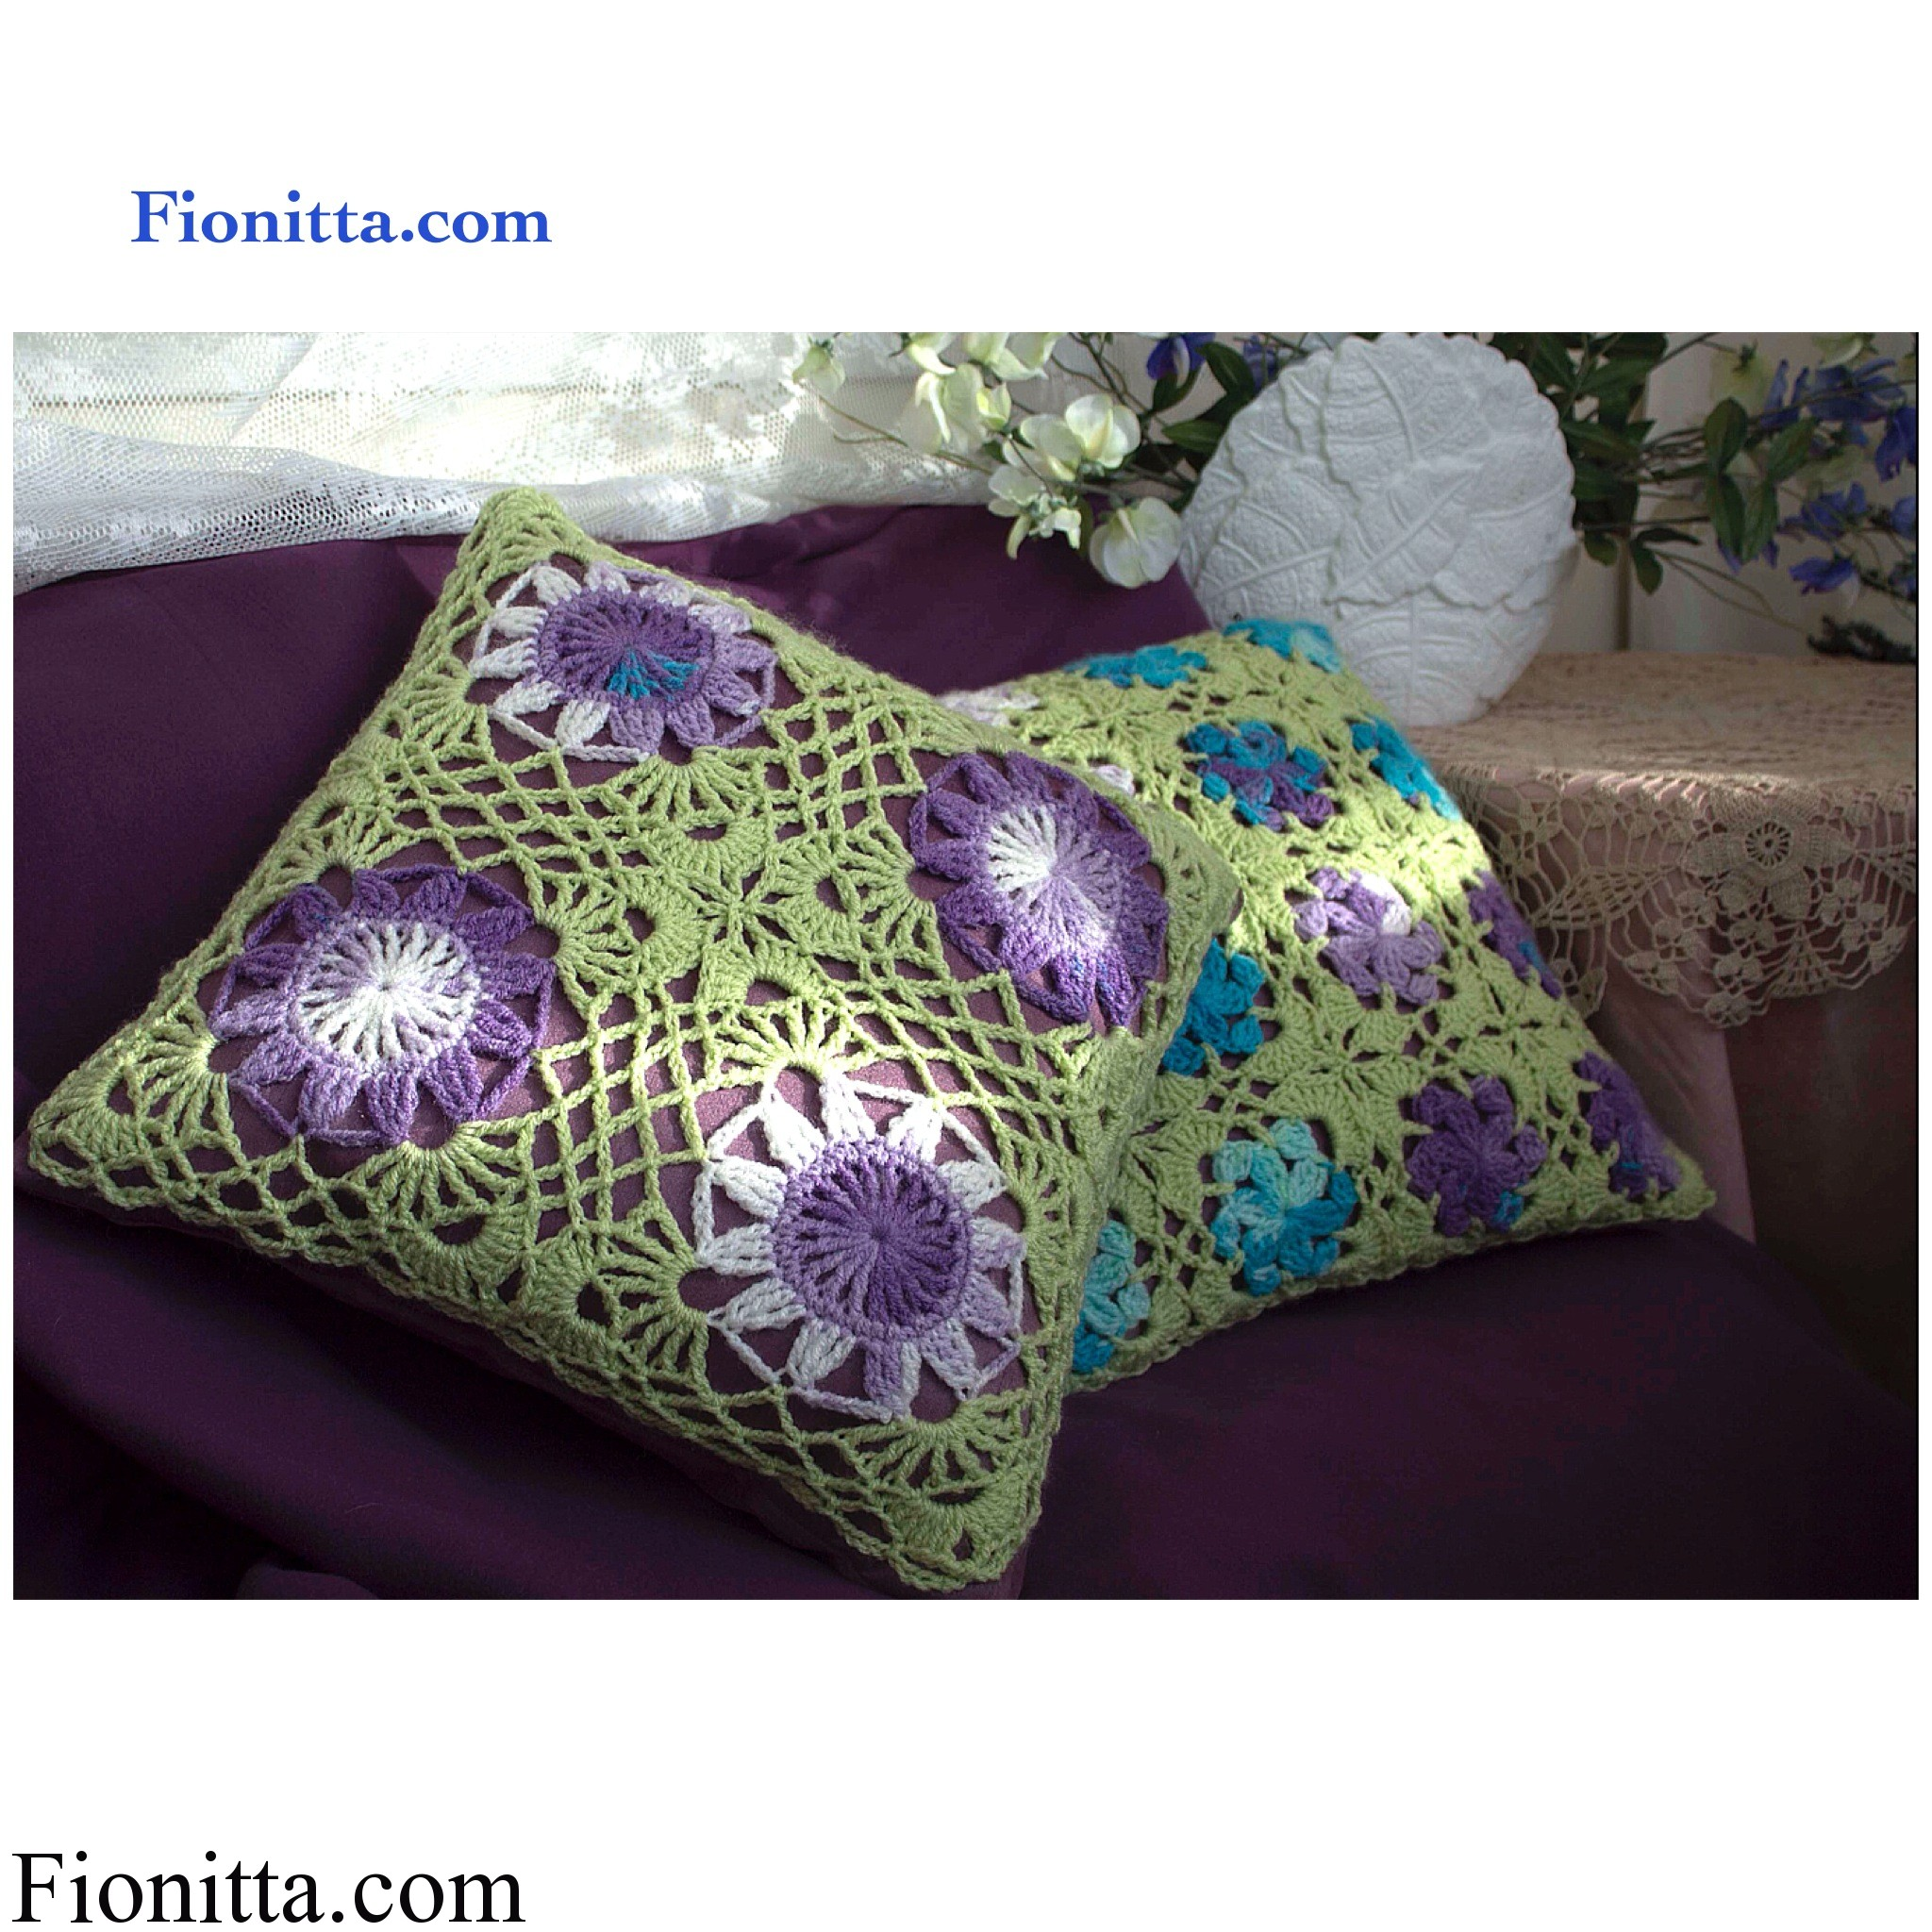 Two square crochet pillows